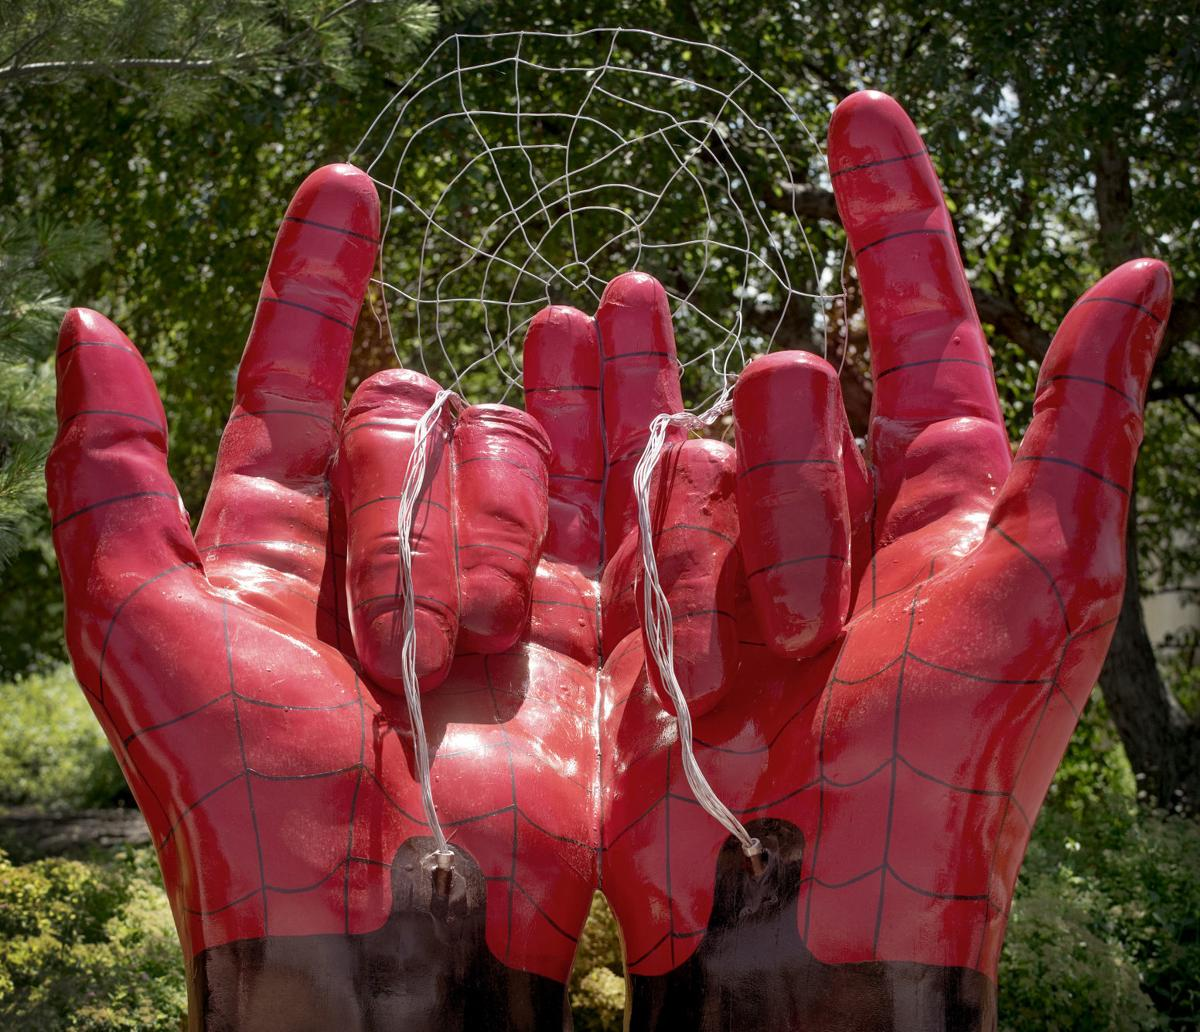 Spiderman's Hands, 7.16